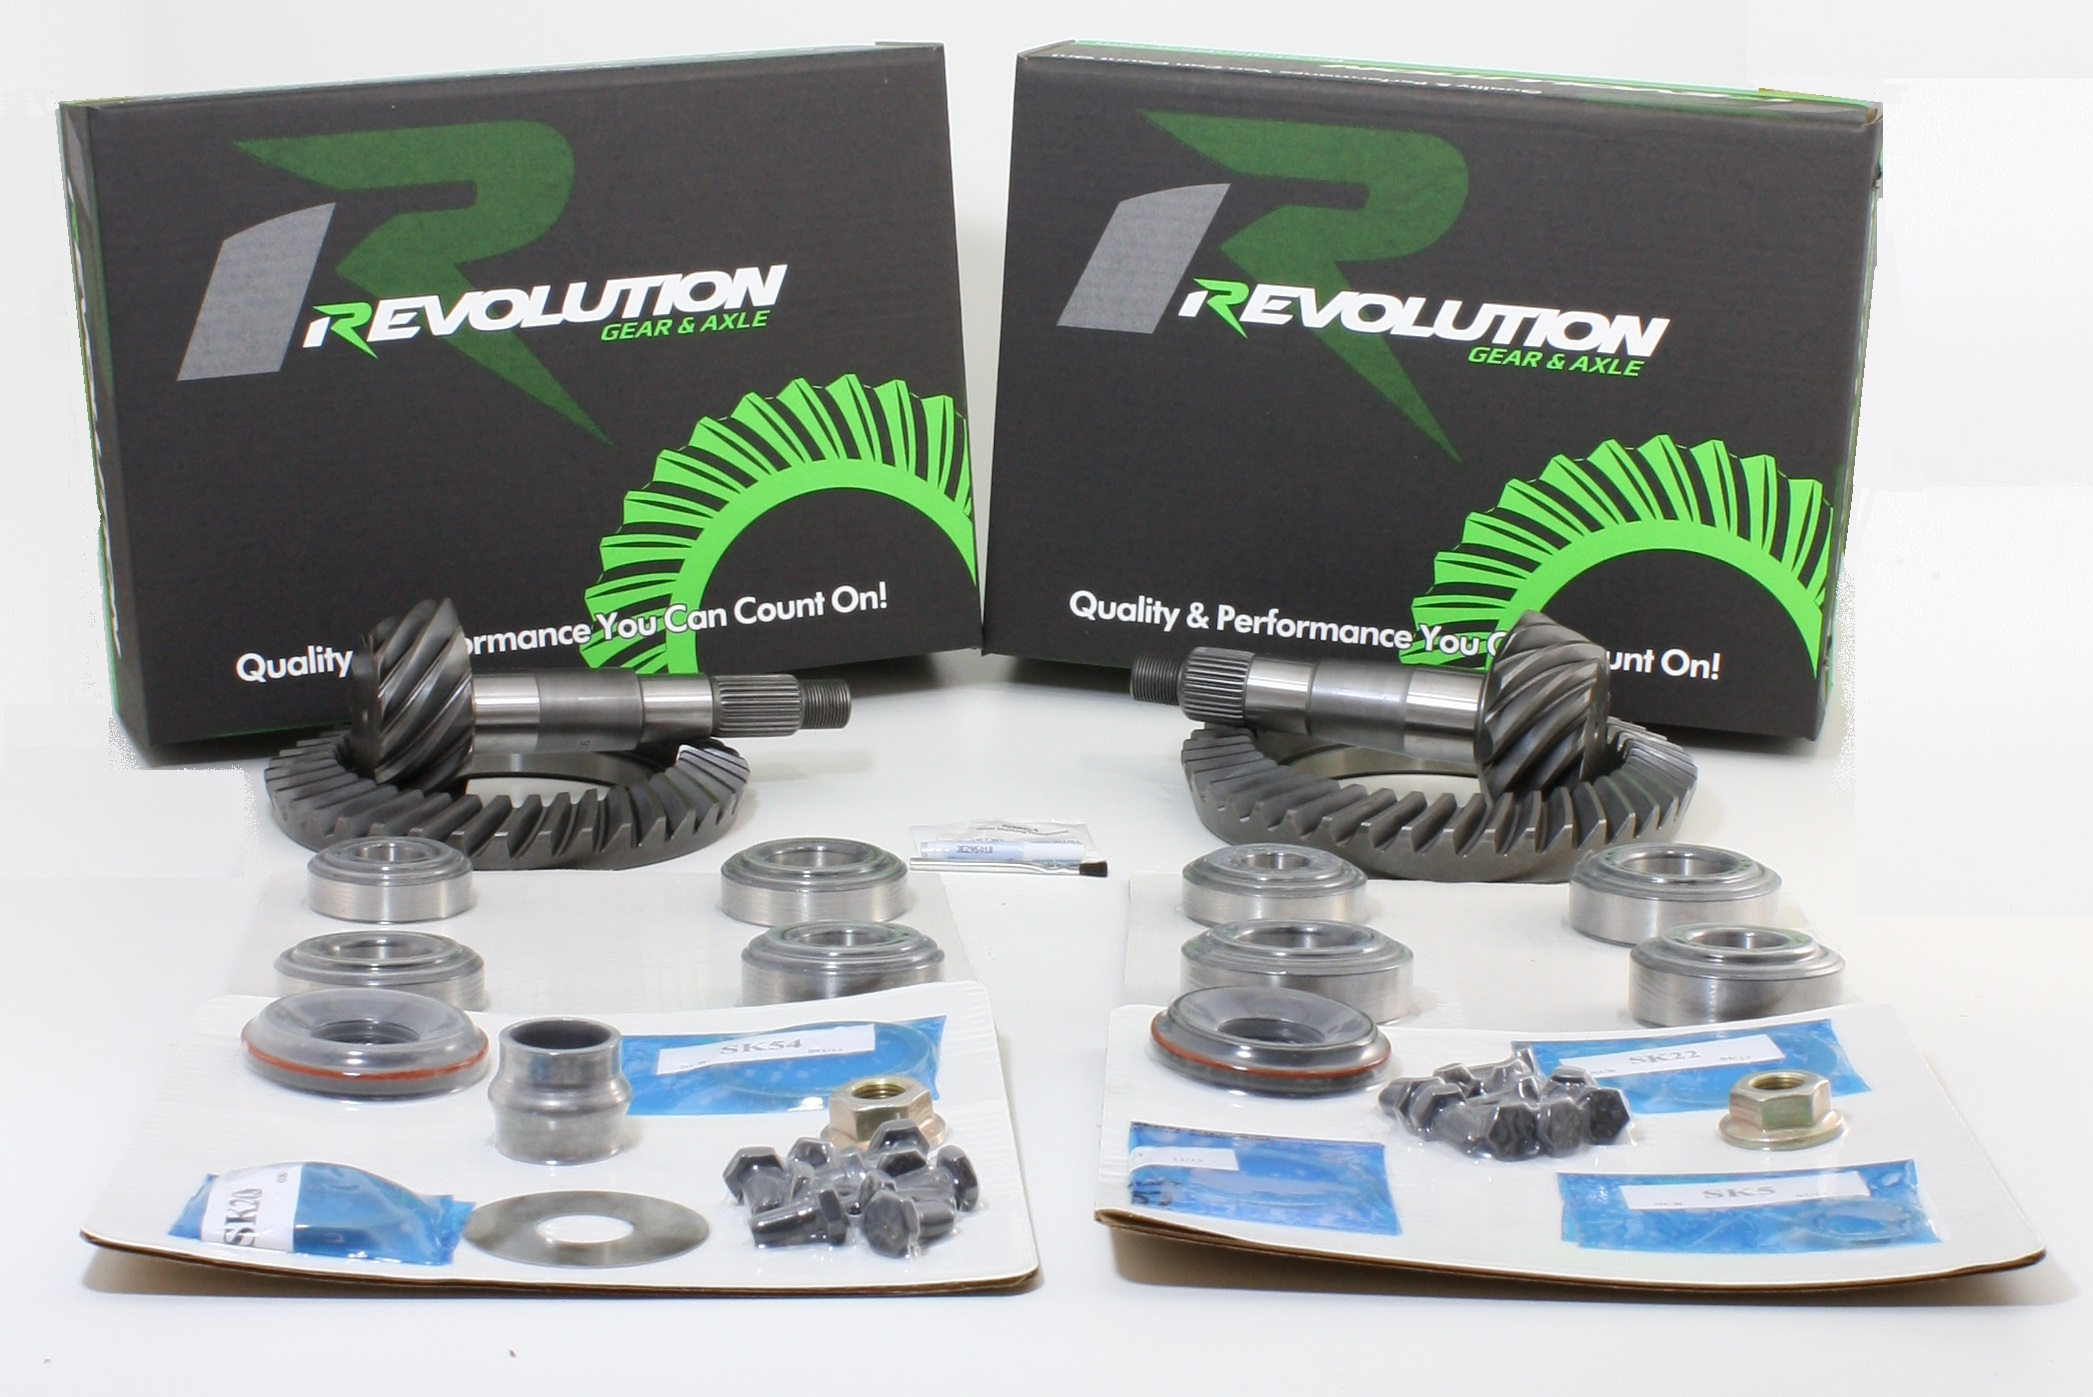 Toyota w/o factory locker 07-09 FJ 05 and Up Tacoma 03-08 4runner (8/8ifs) 4.88 Gear Package front and rear gears and master kits (thick front gear to fit 3.73 and down case) Revolution Gear